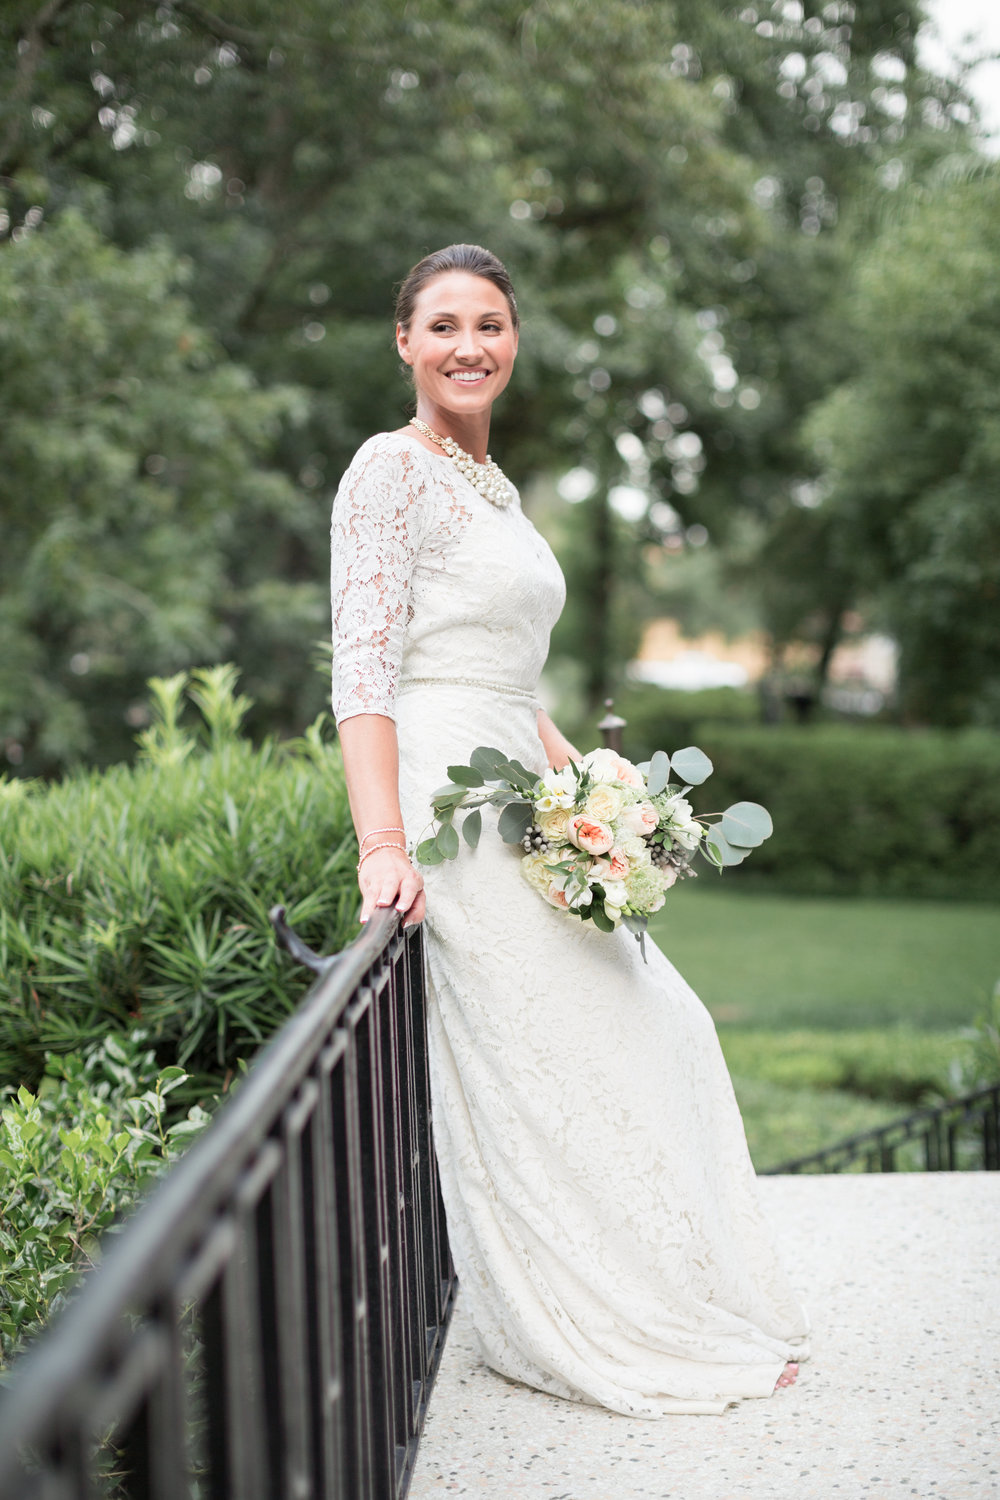 Lyndi-J-Photography-Larger-Than-Life-Events-brockington-hall-ivory-and-beau-bridal-boutique-savannah-wedding-dresses-savannah-bridal-gowns-rebecca-schoneveld-elsa-savannah-weddings-georgia-bridal-boutique-jacksonville-bridal-charleston-bridal-29.jpg